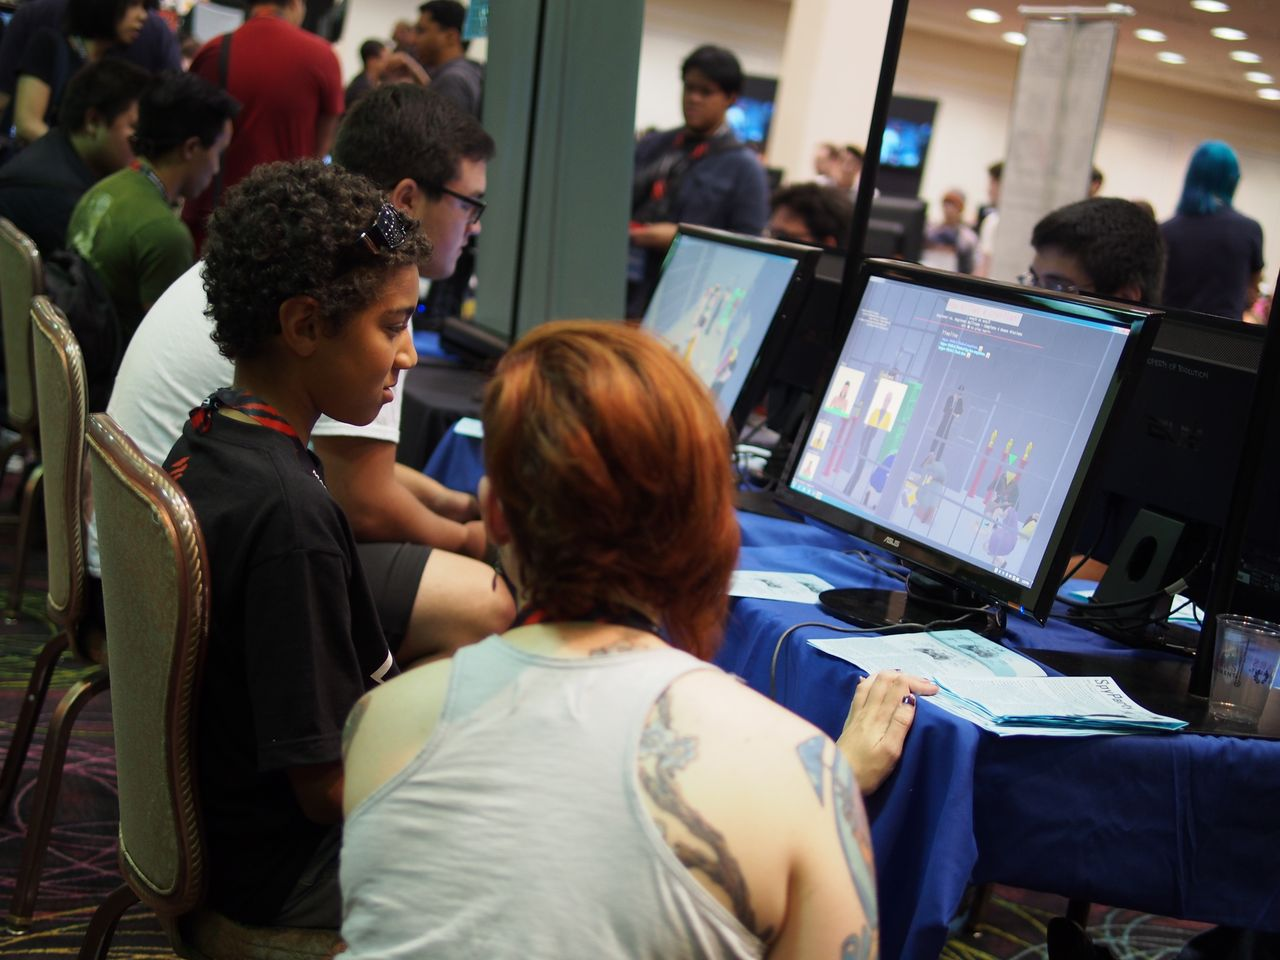 An attendee gets a personal lesson in how to play <i>Spy Party</i> at the Evo indie game showcase.